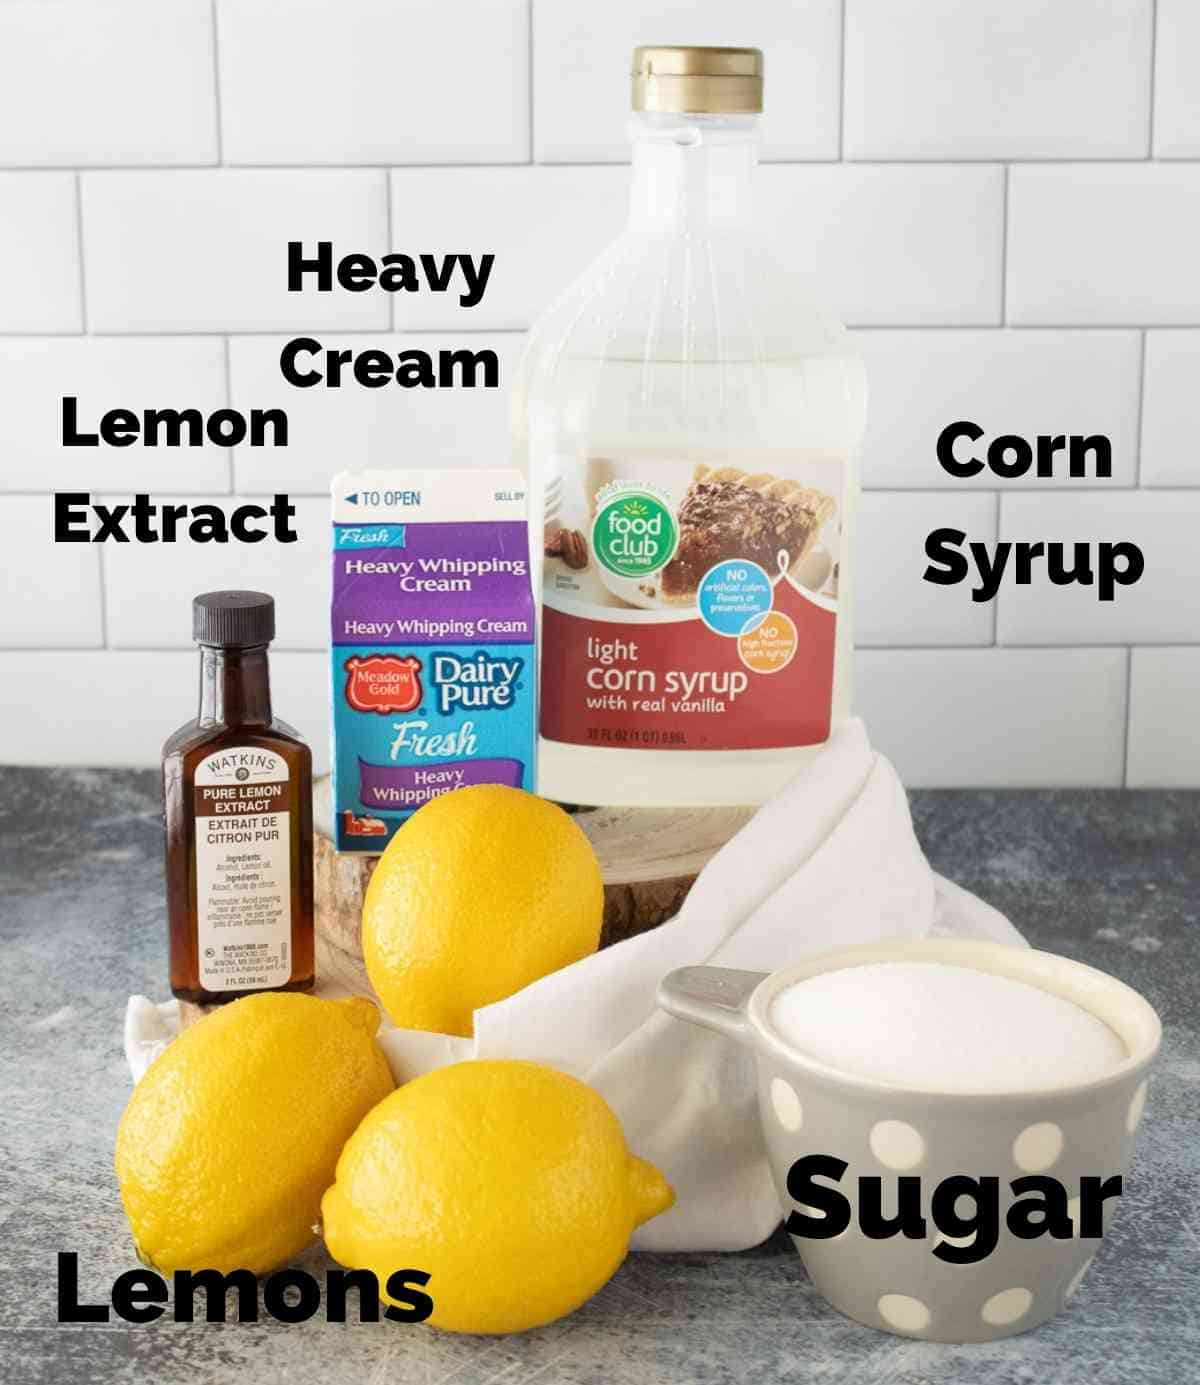 All you need is lemons, lemon extract, sugar, corn syrup, and heavy cream for this easy recipe!